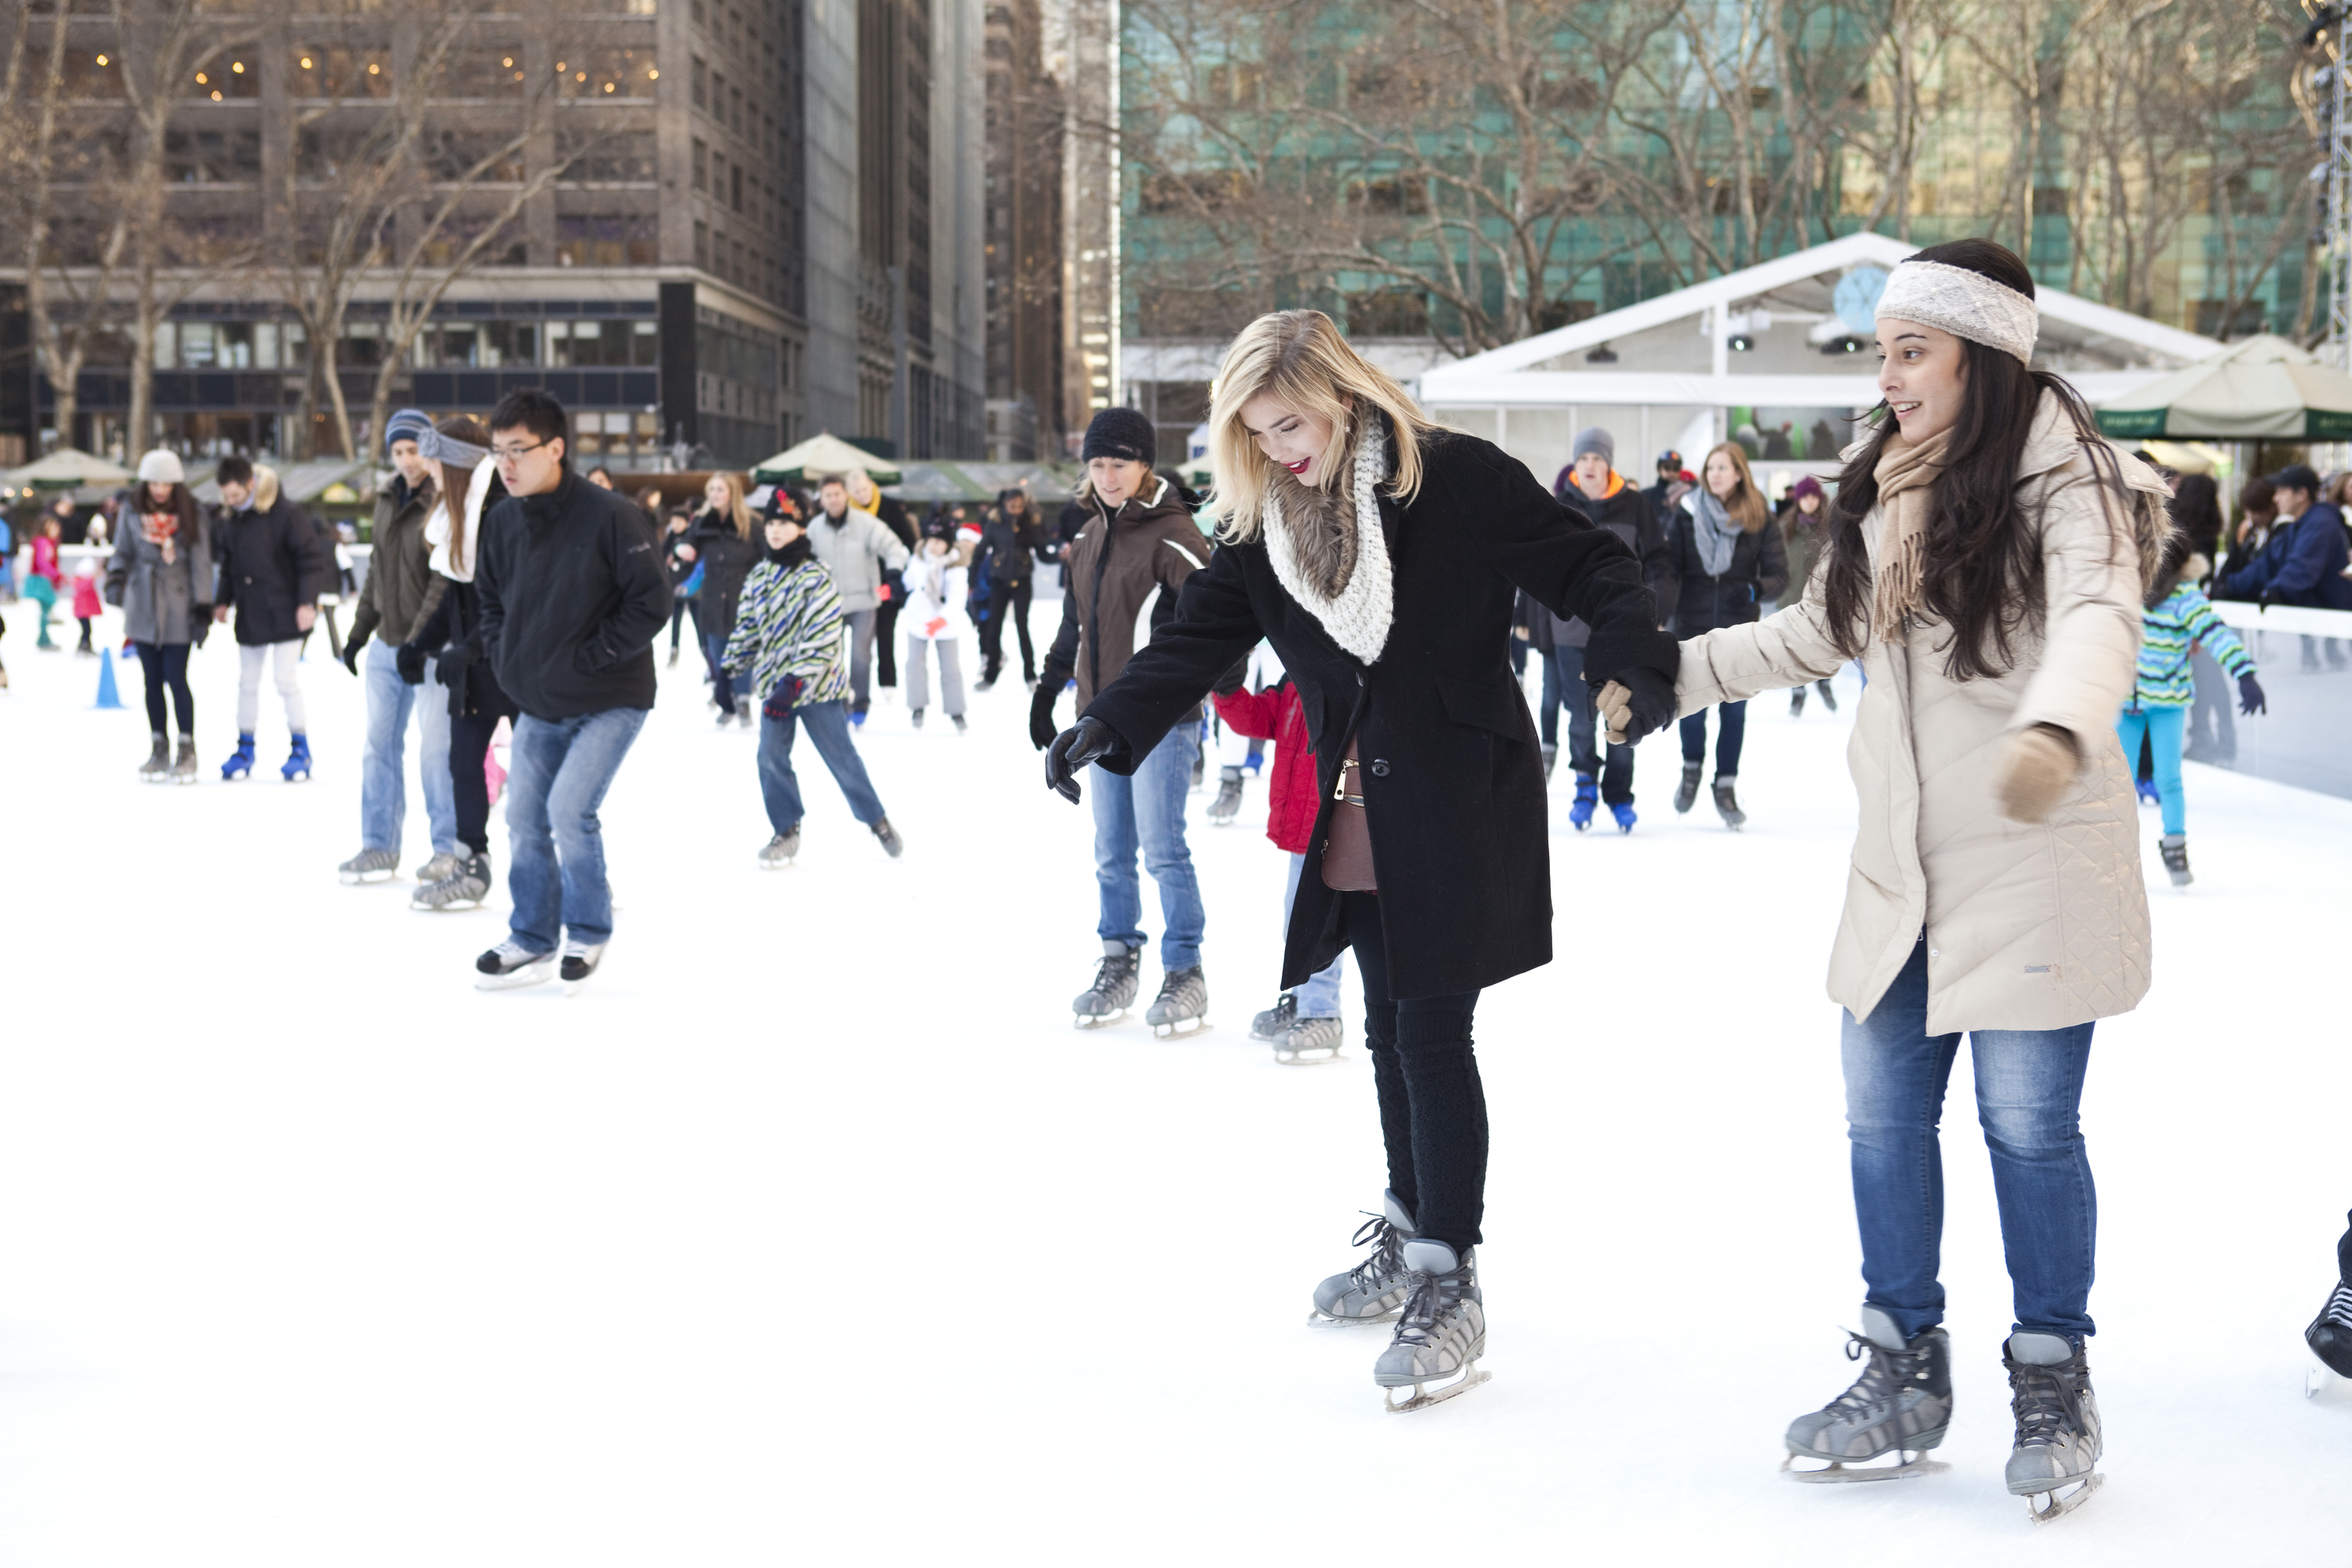 Bryant Park is now offering fitness classes on its ice rink